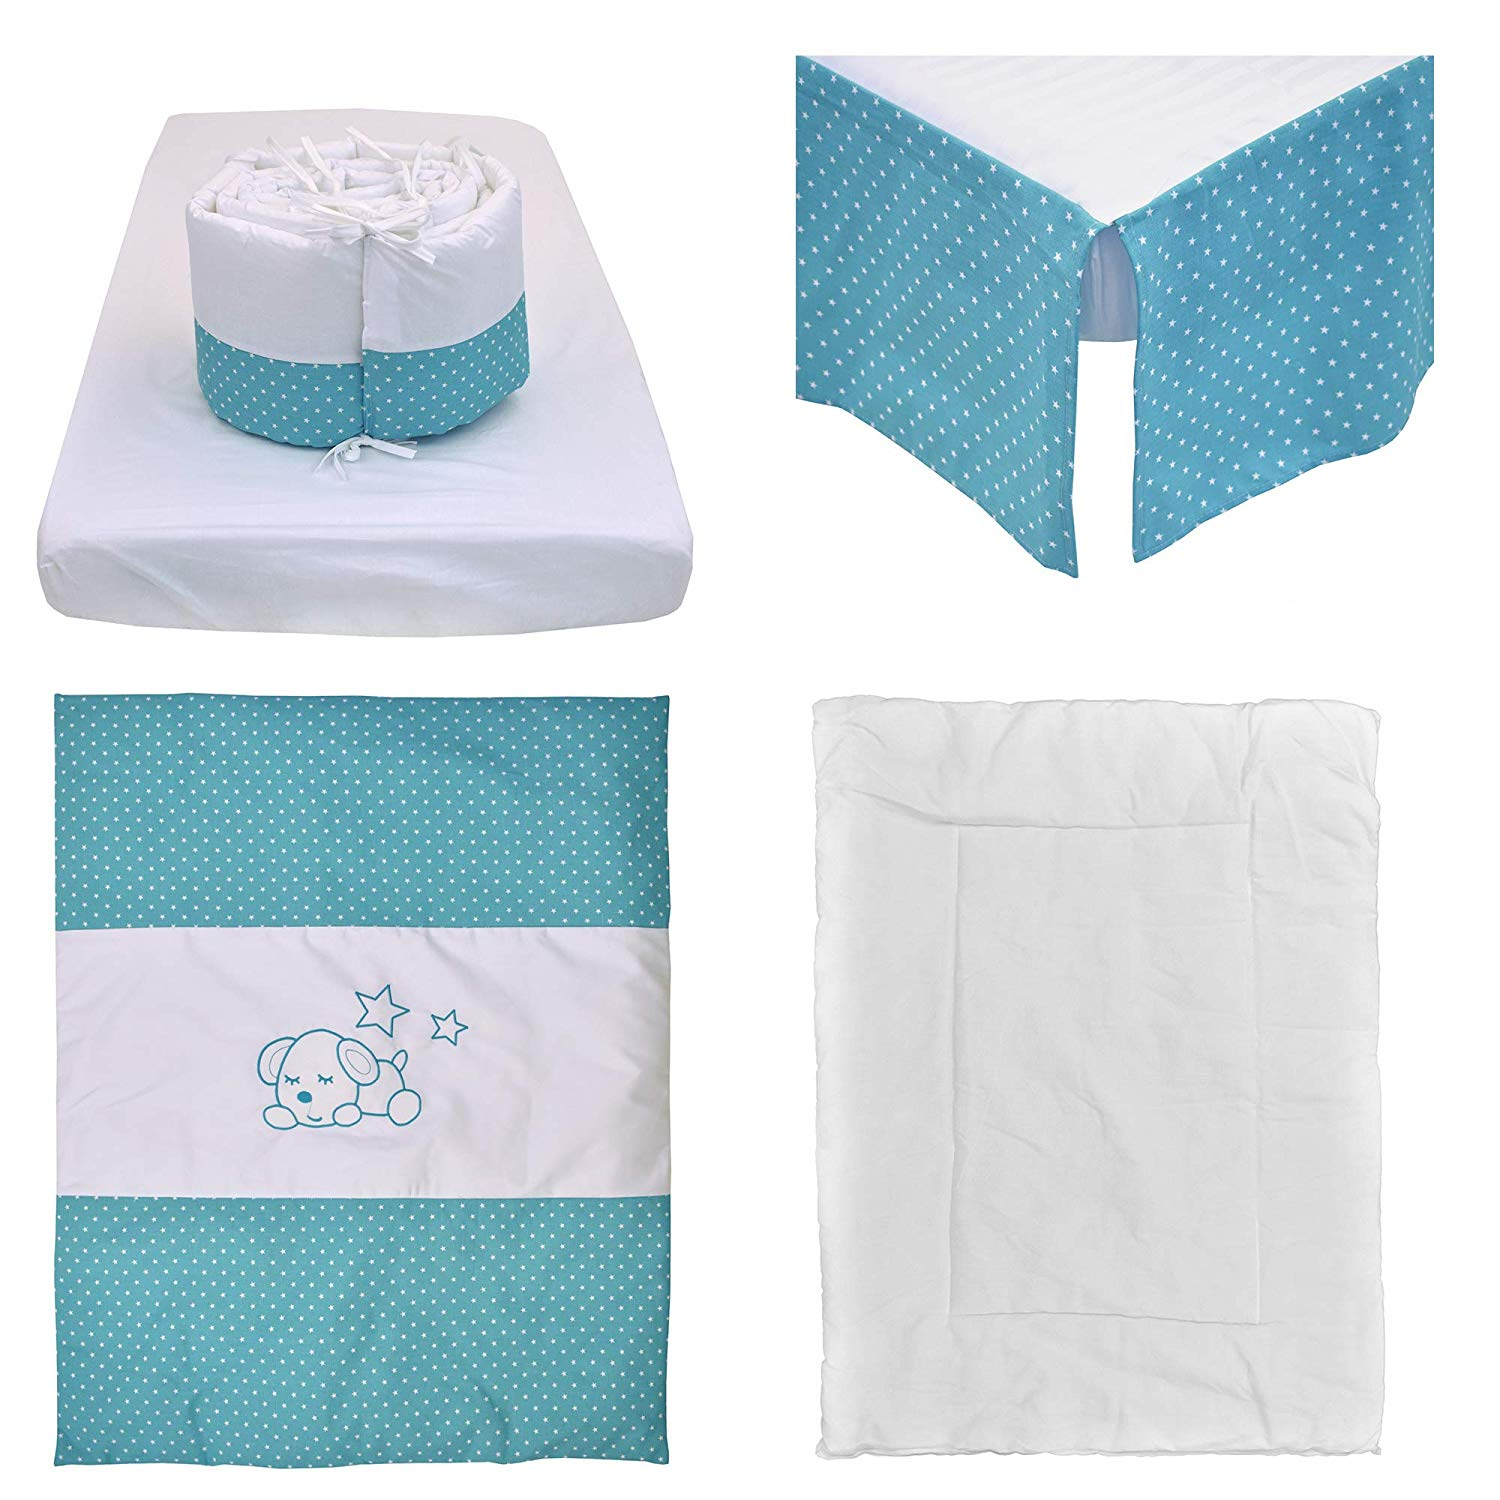 Bebelelo - 5 pieces bedding for baby - turquoise and white with a Sleeping Dog pattern - image 1 of 9